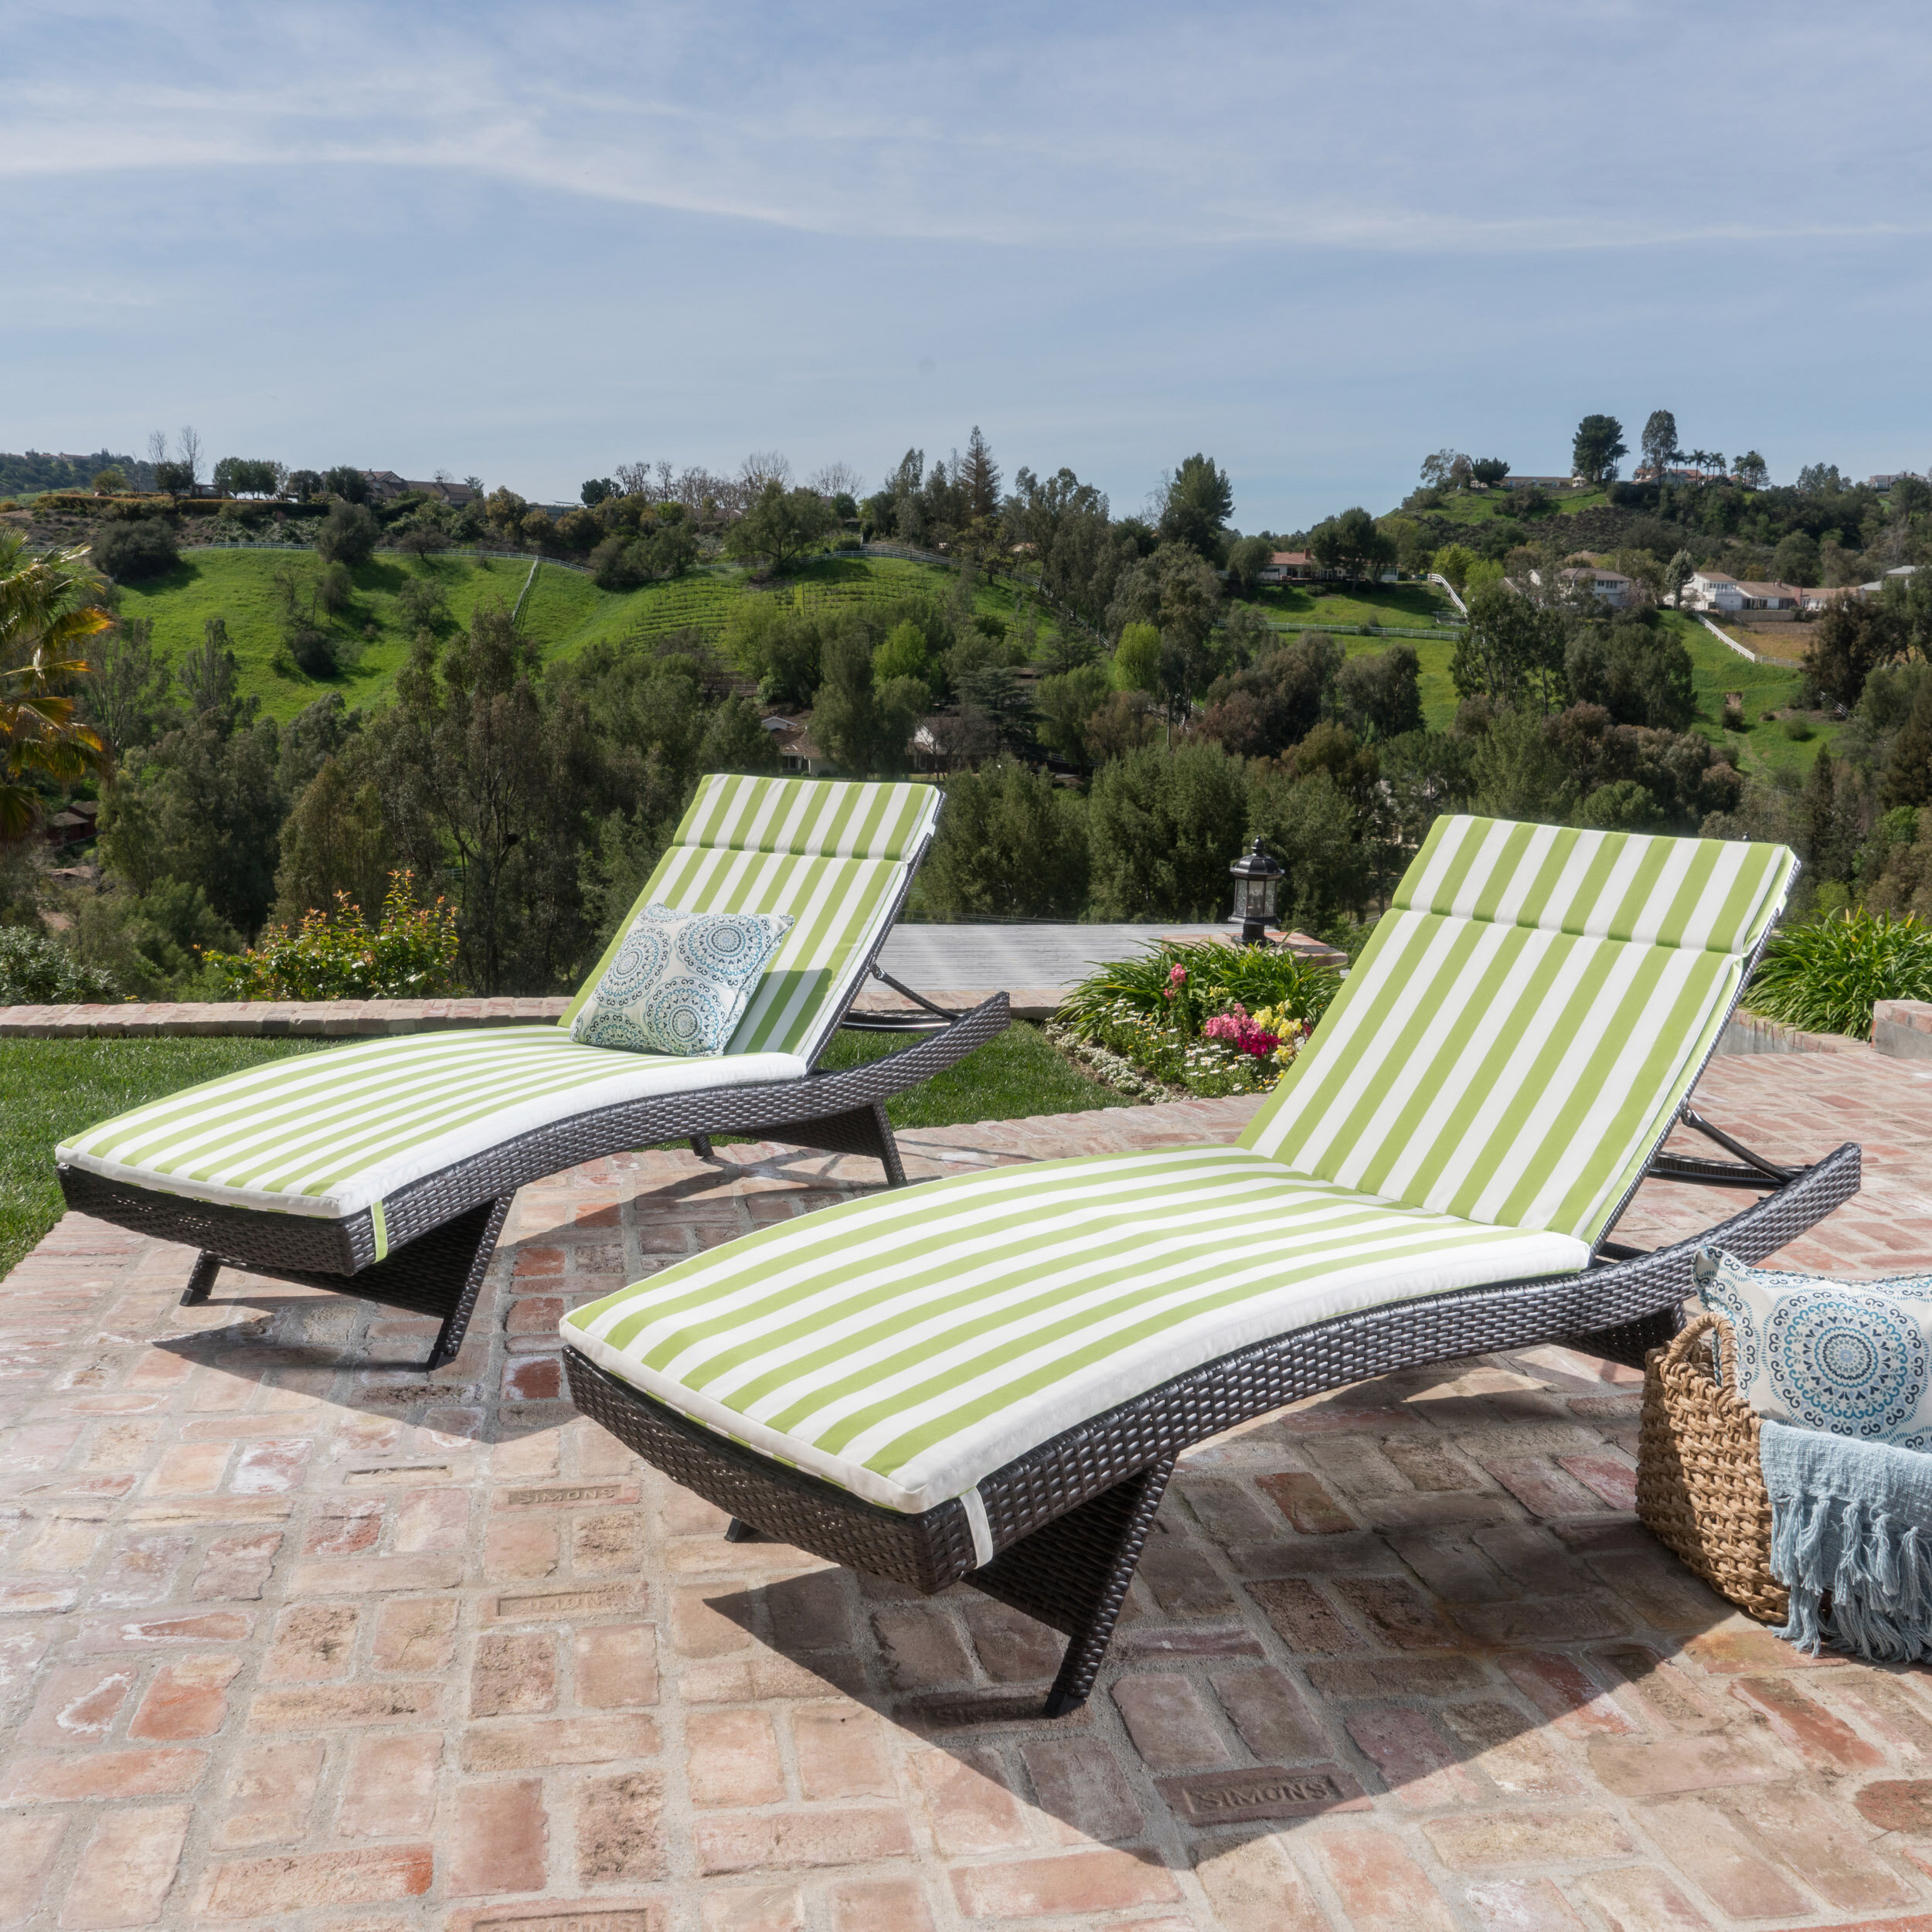 Similar patio chaise lounges below